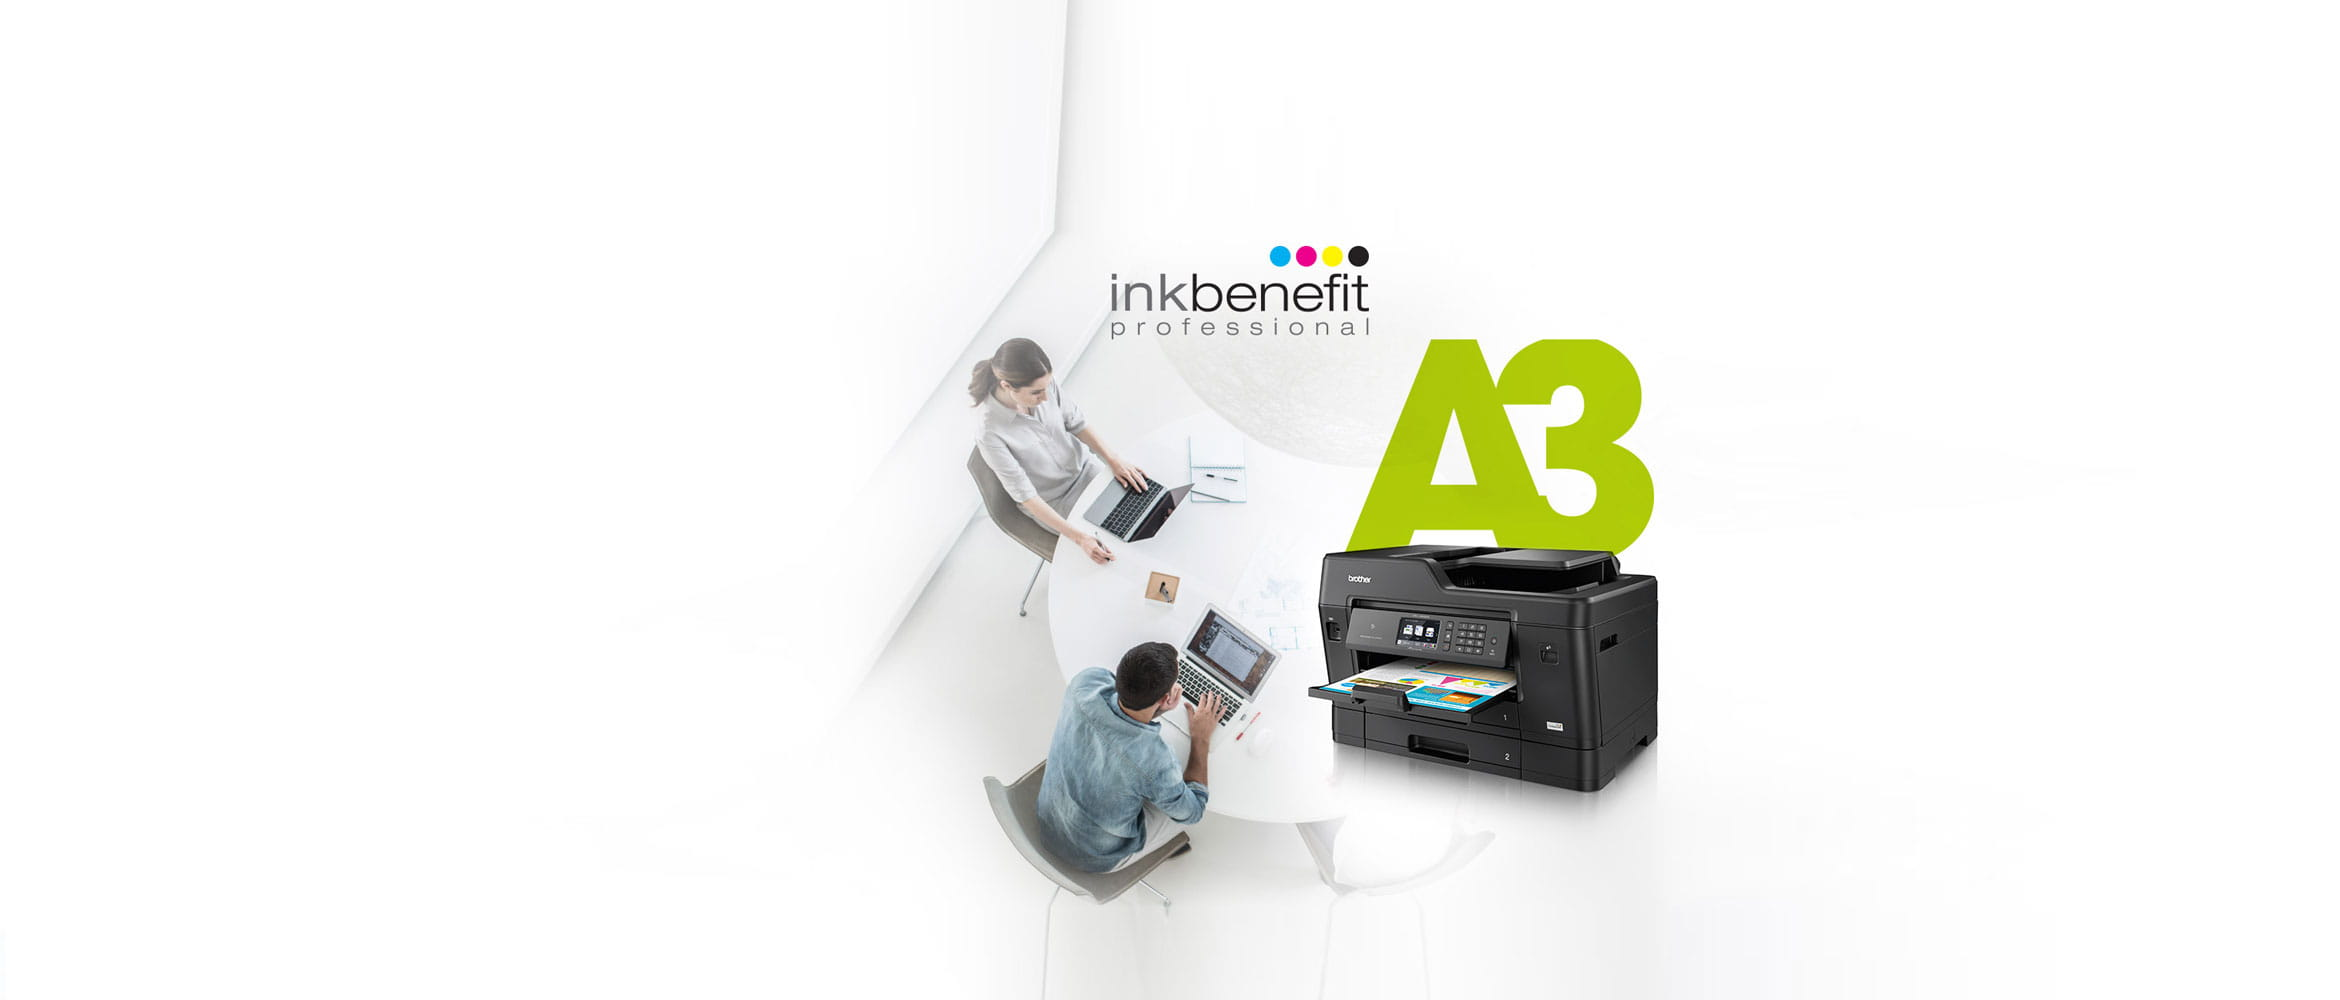 Brother InkBenefit Professional image with people and A3 printer